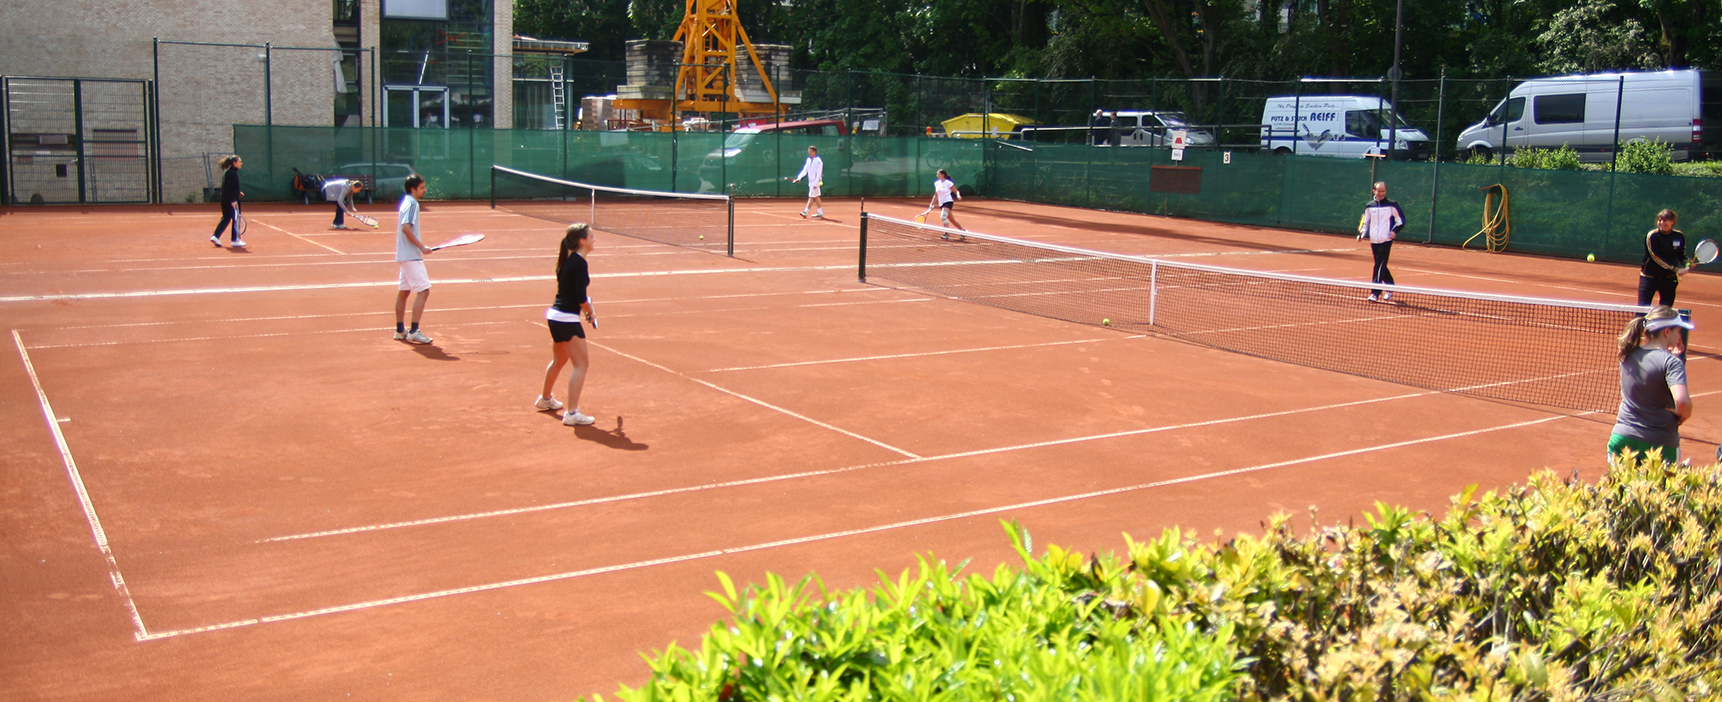 Tennis courts at Prof.-Pirlet-Straße